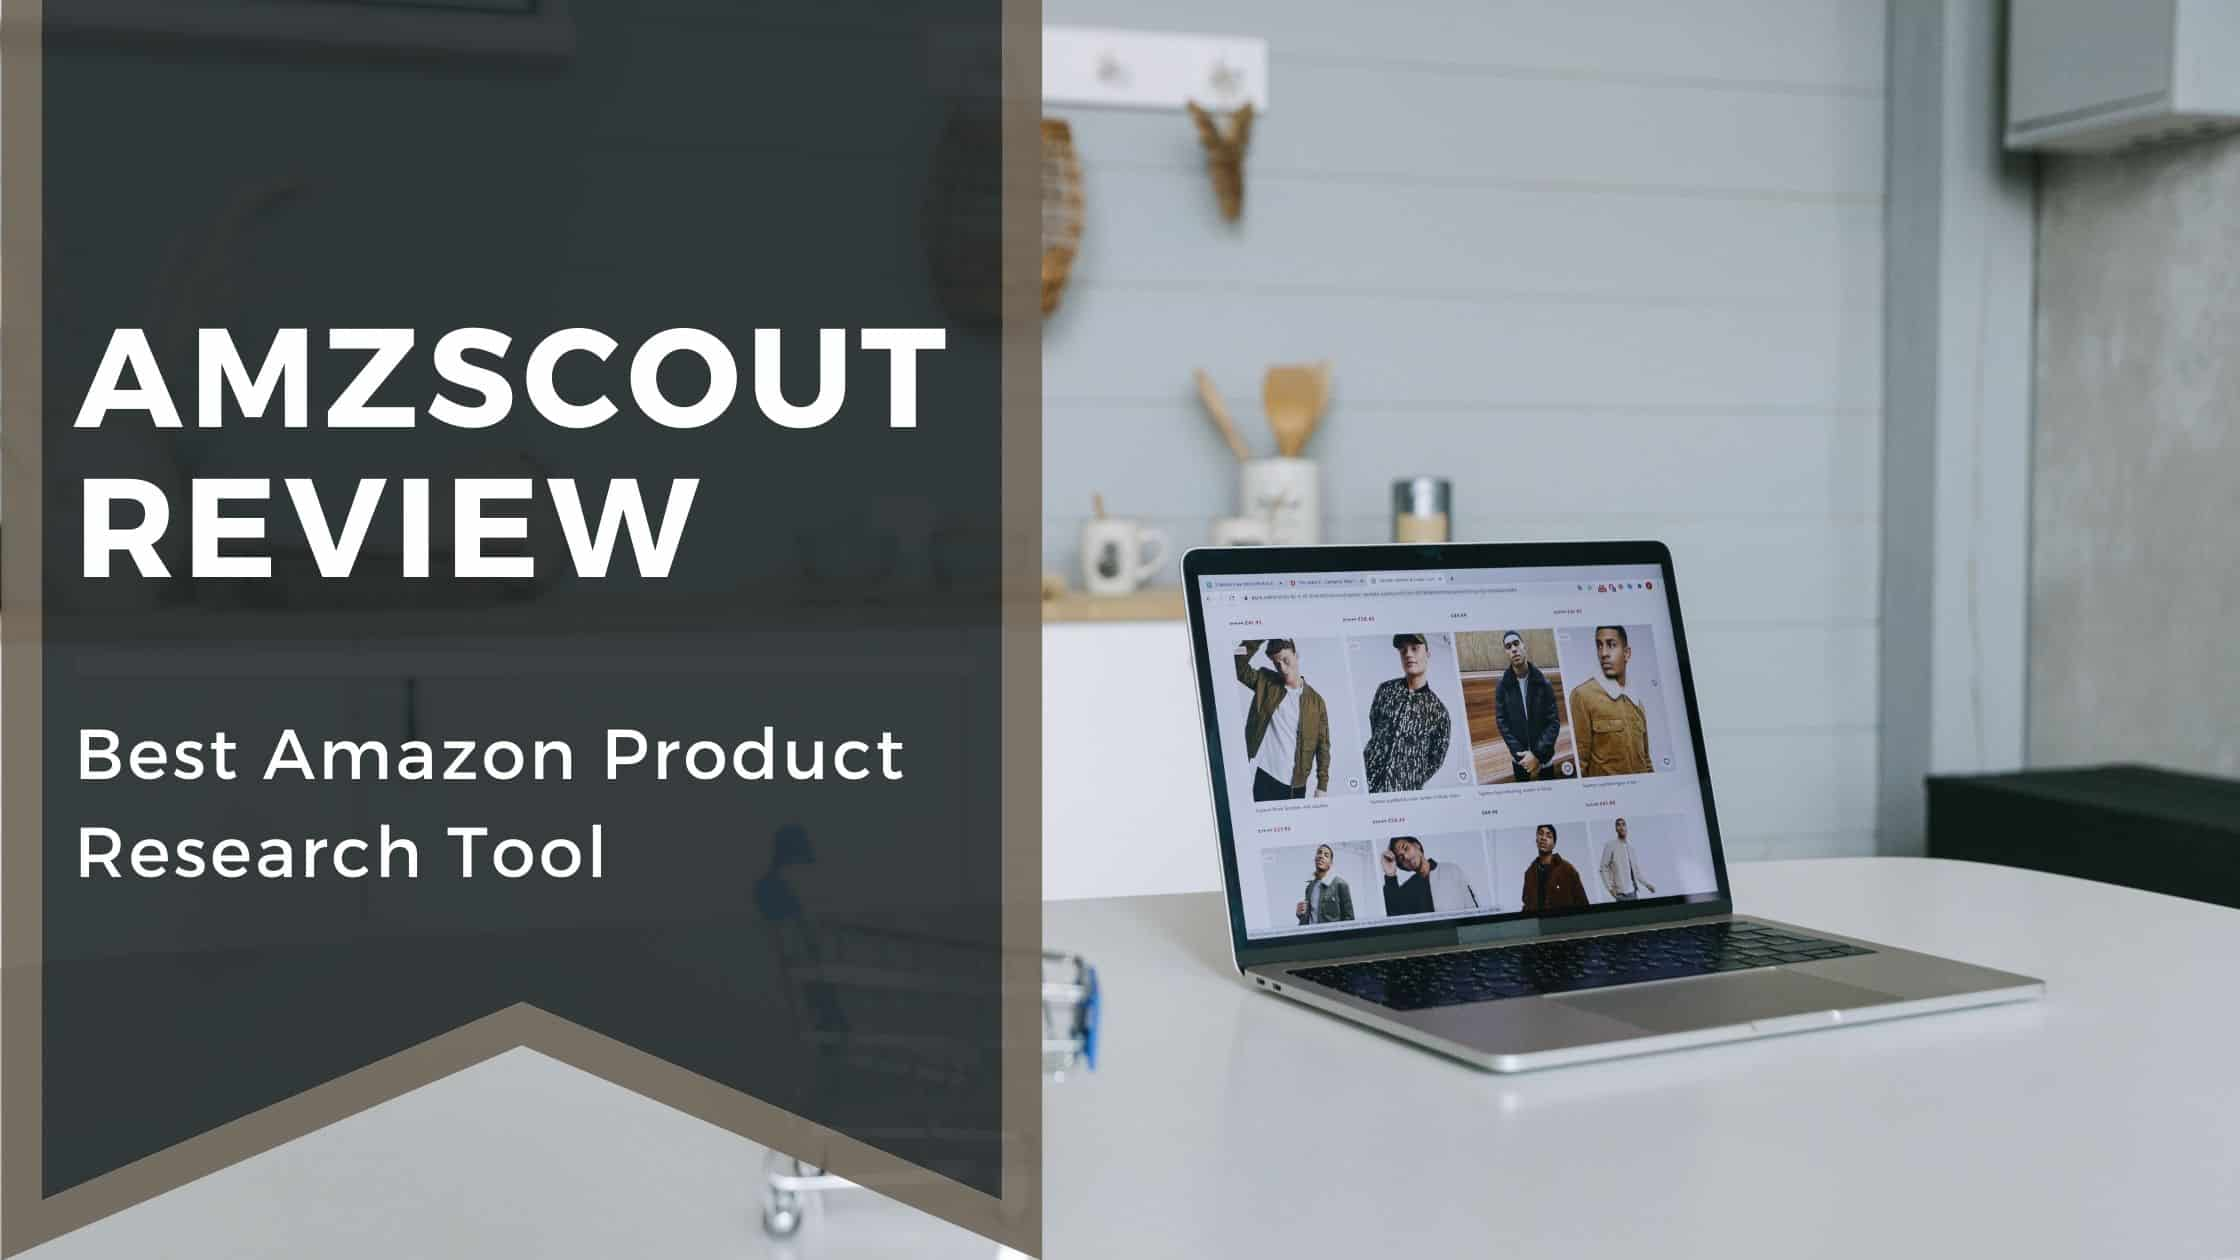 AMZScout Review 2021 - Best Amazon Product Research Tool